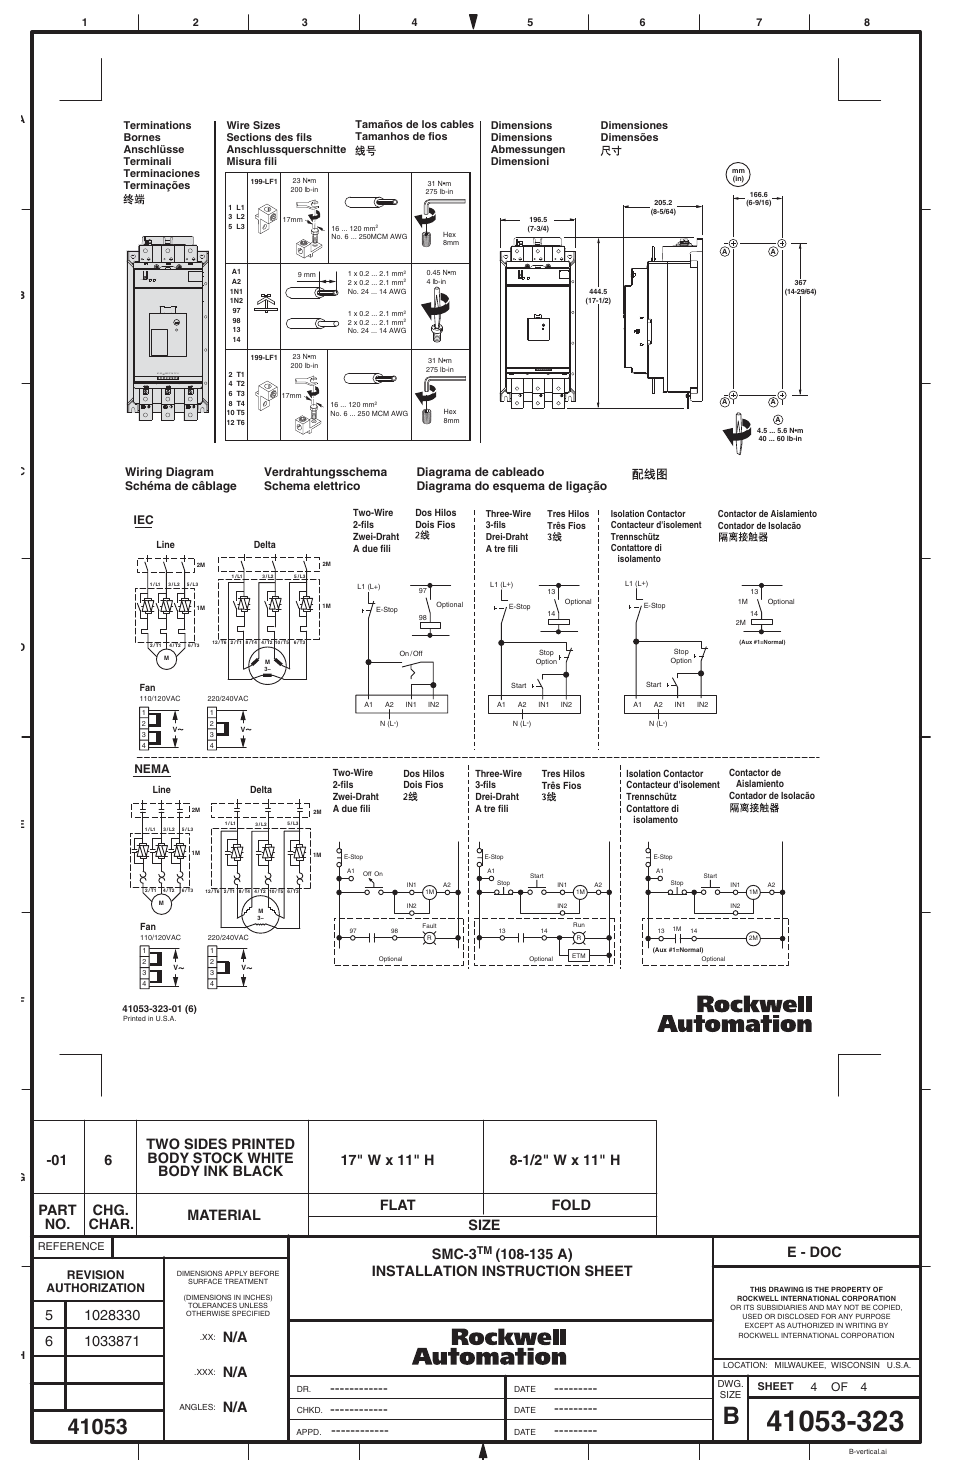 smc wiring diagram online schematic diagram